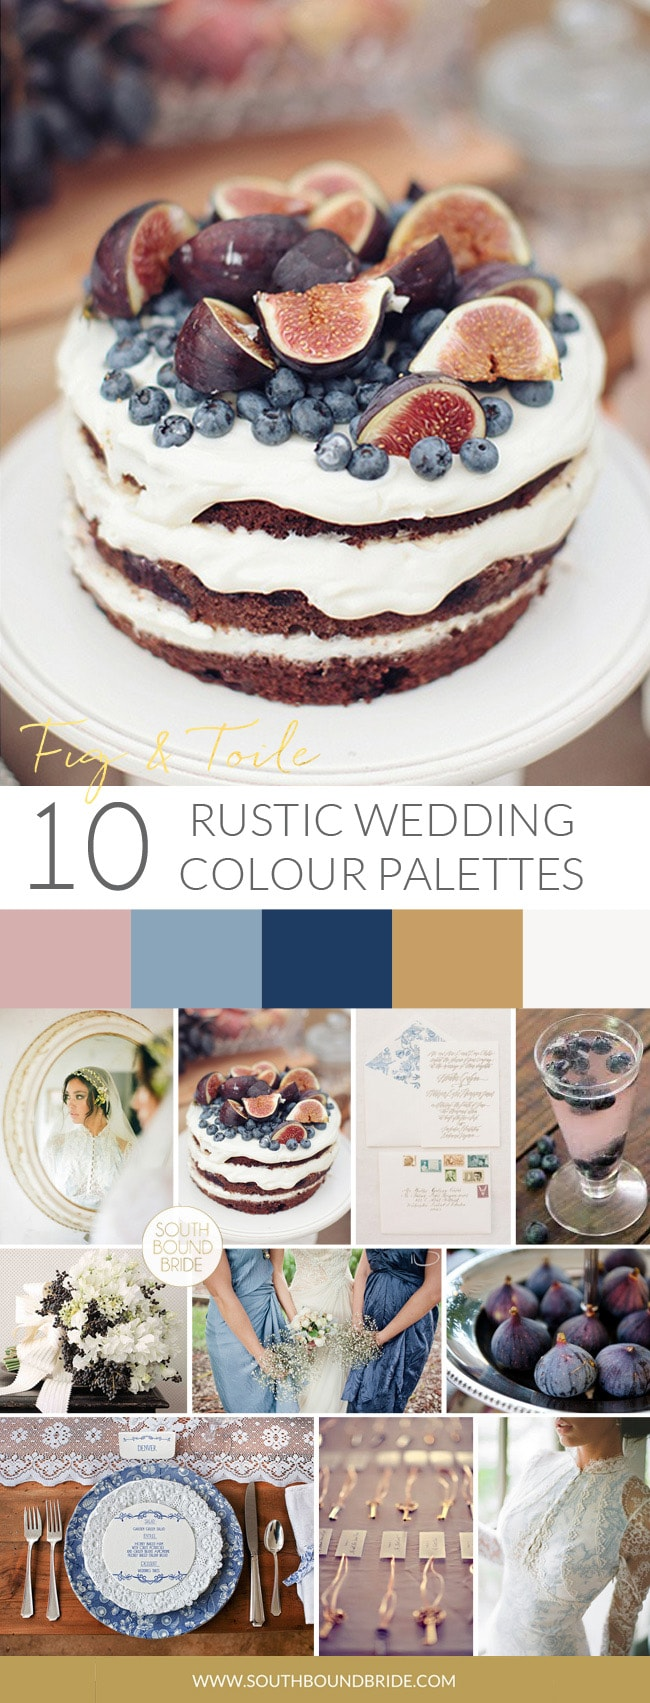 Fig & Toile Rustic Wedding Palette | SouthBound Bride